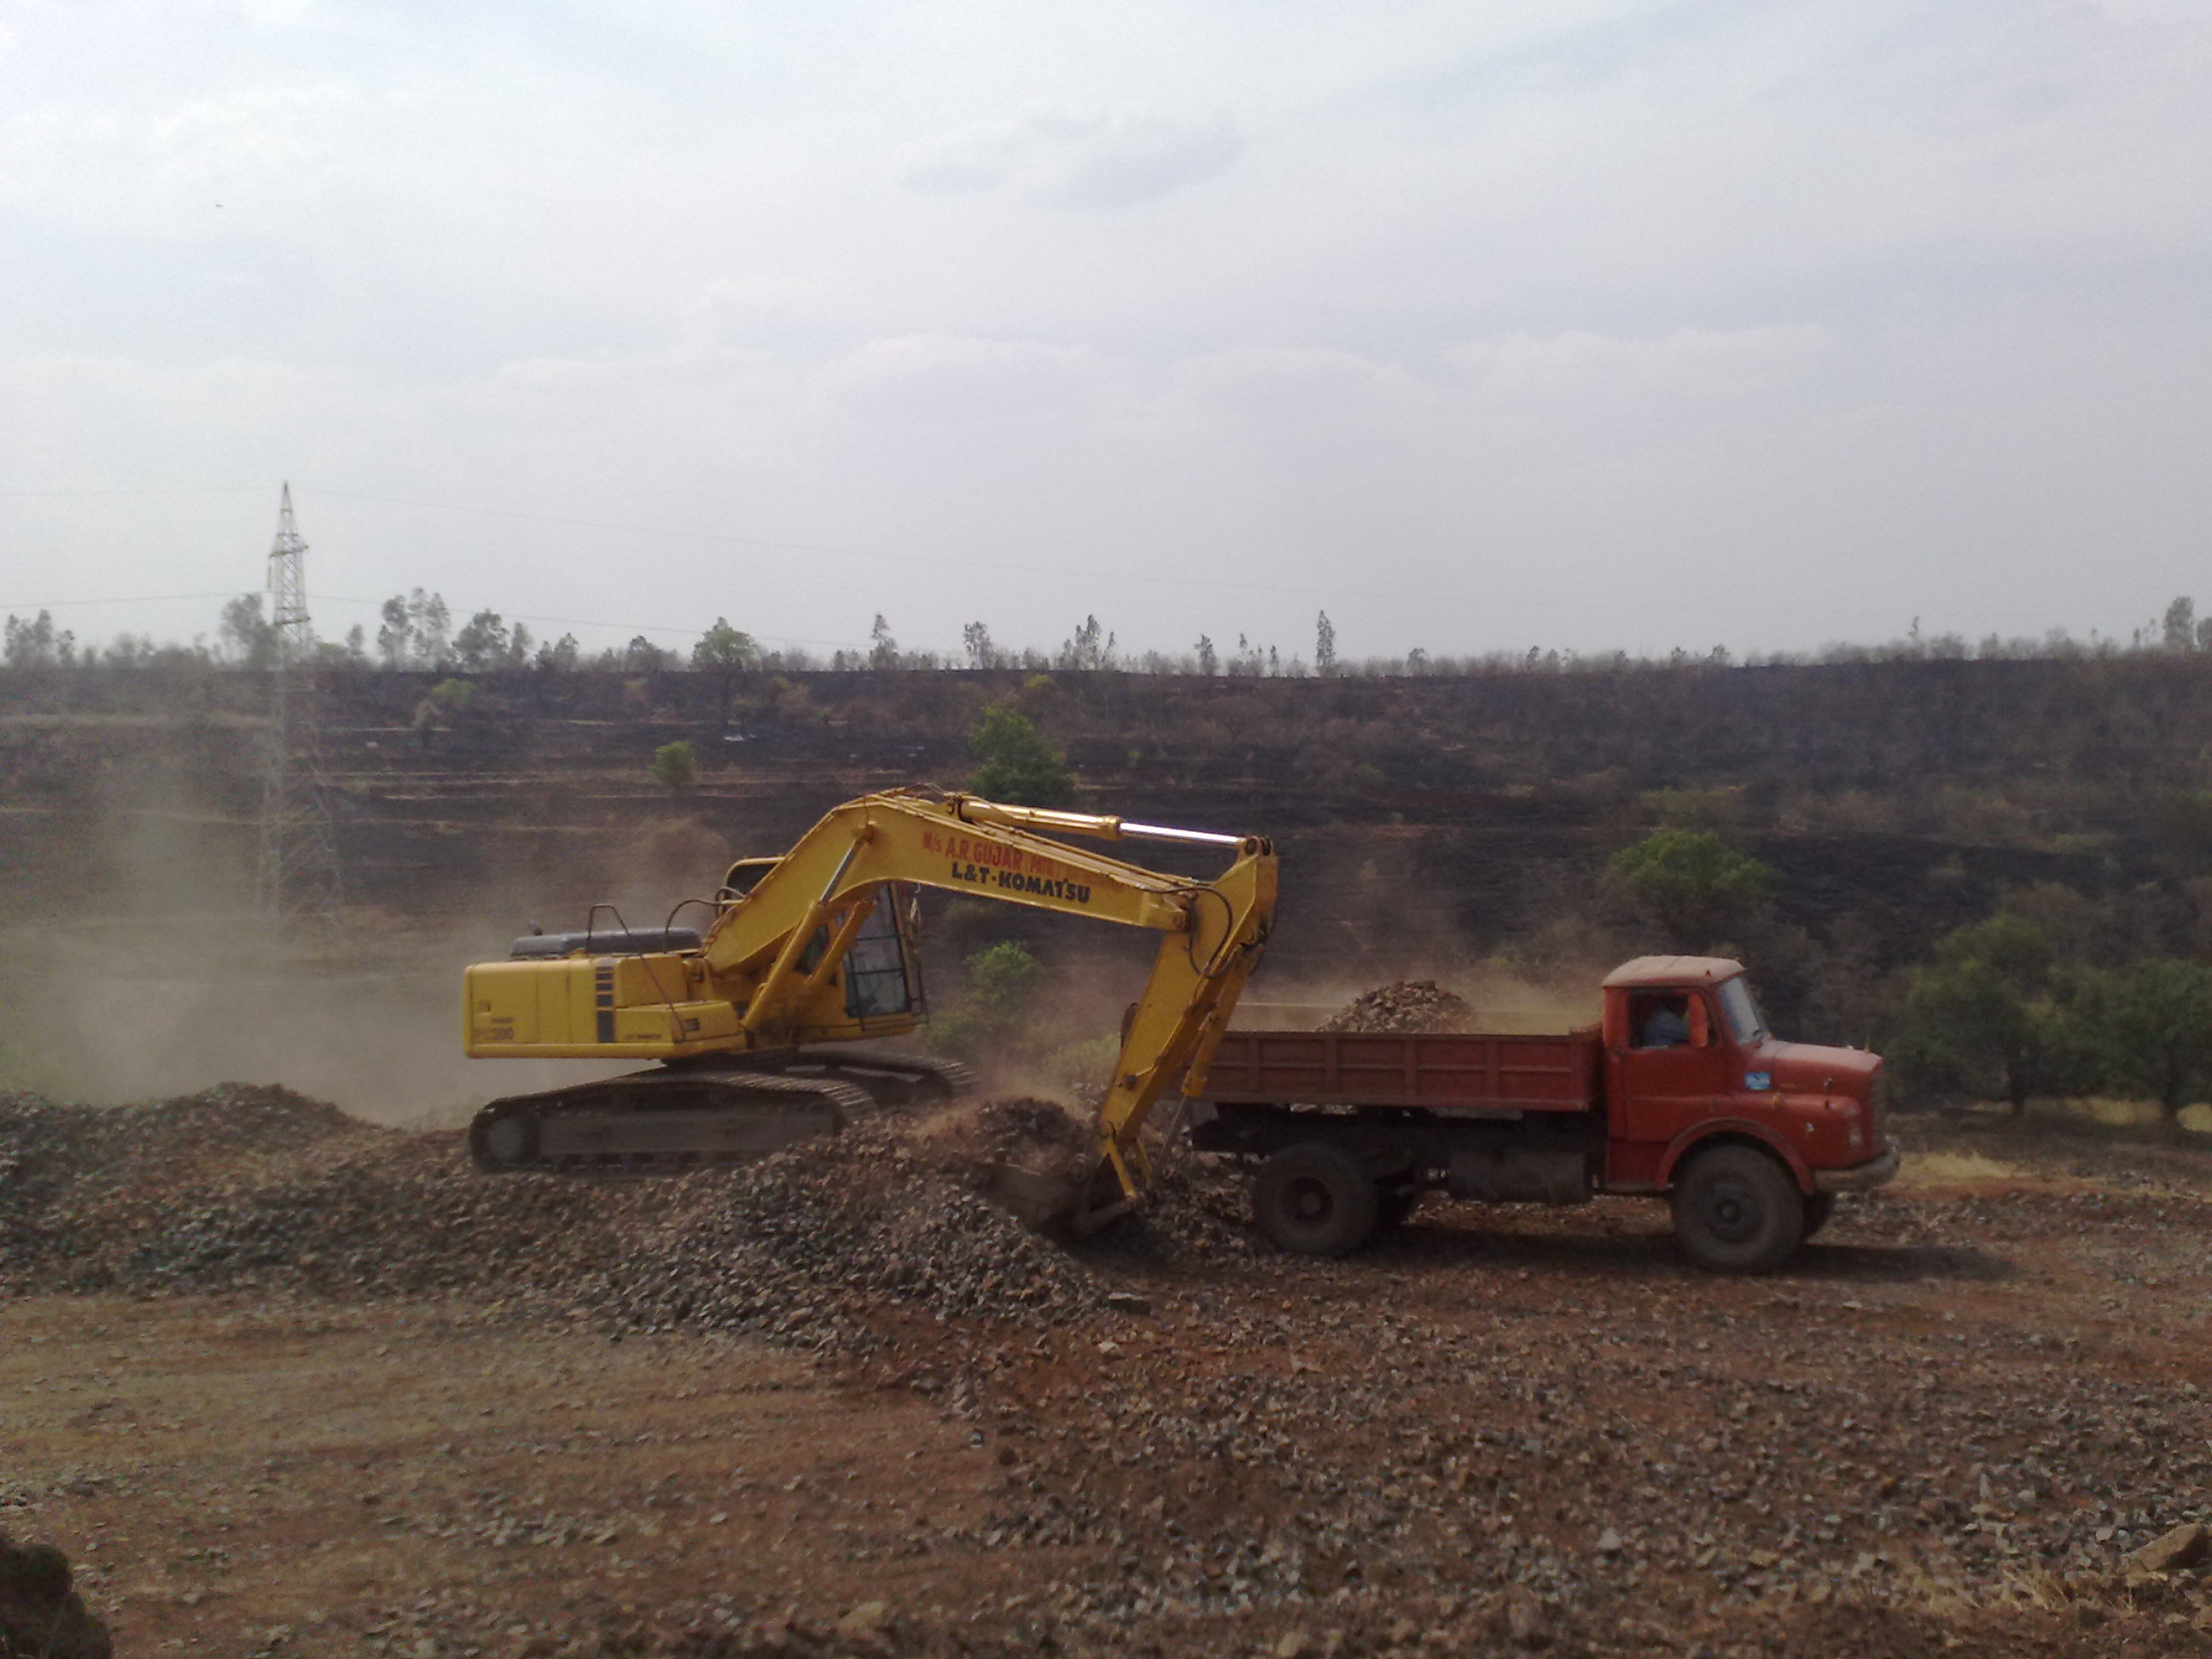 2021 L and T Komatsu PC 200 Excavator for rent in Pune, Maharashtra, India by owners online at best price, Product ID: 447182, Image - Infra Bazaar